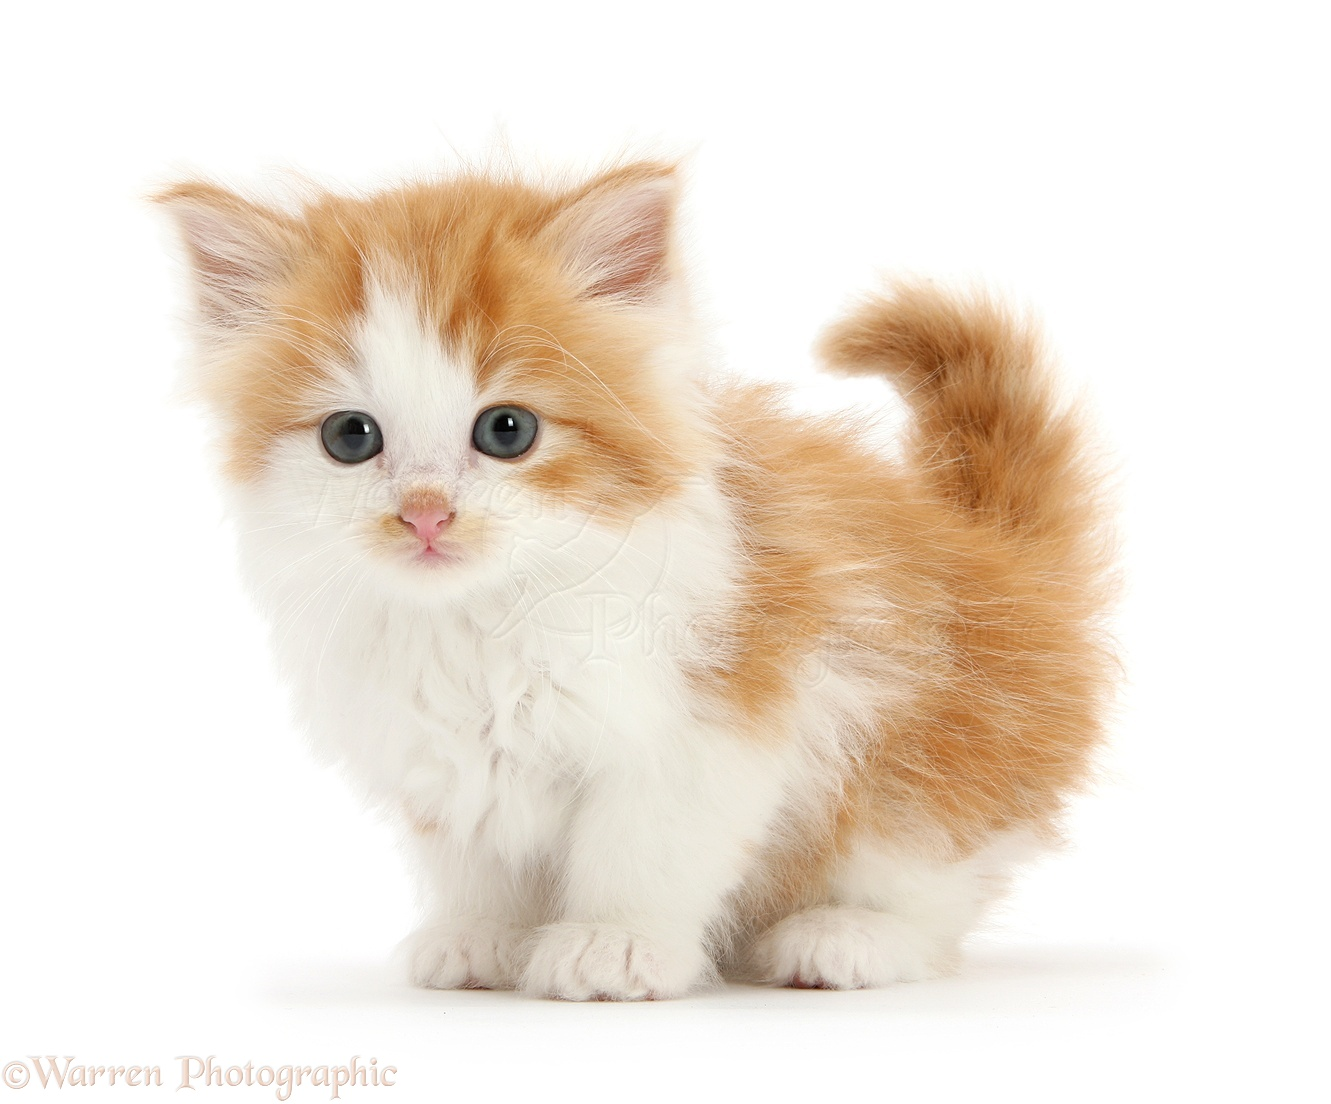 Cute White Baby Cats Images